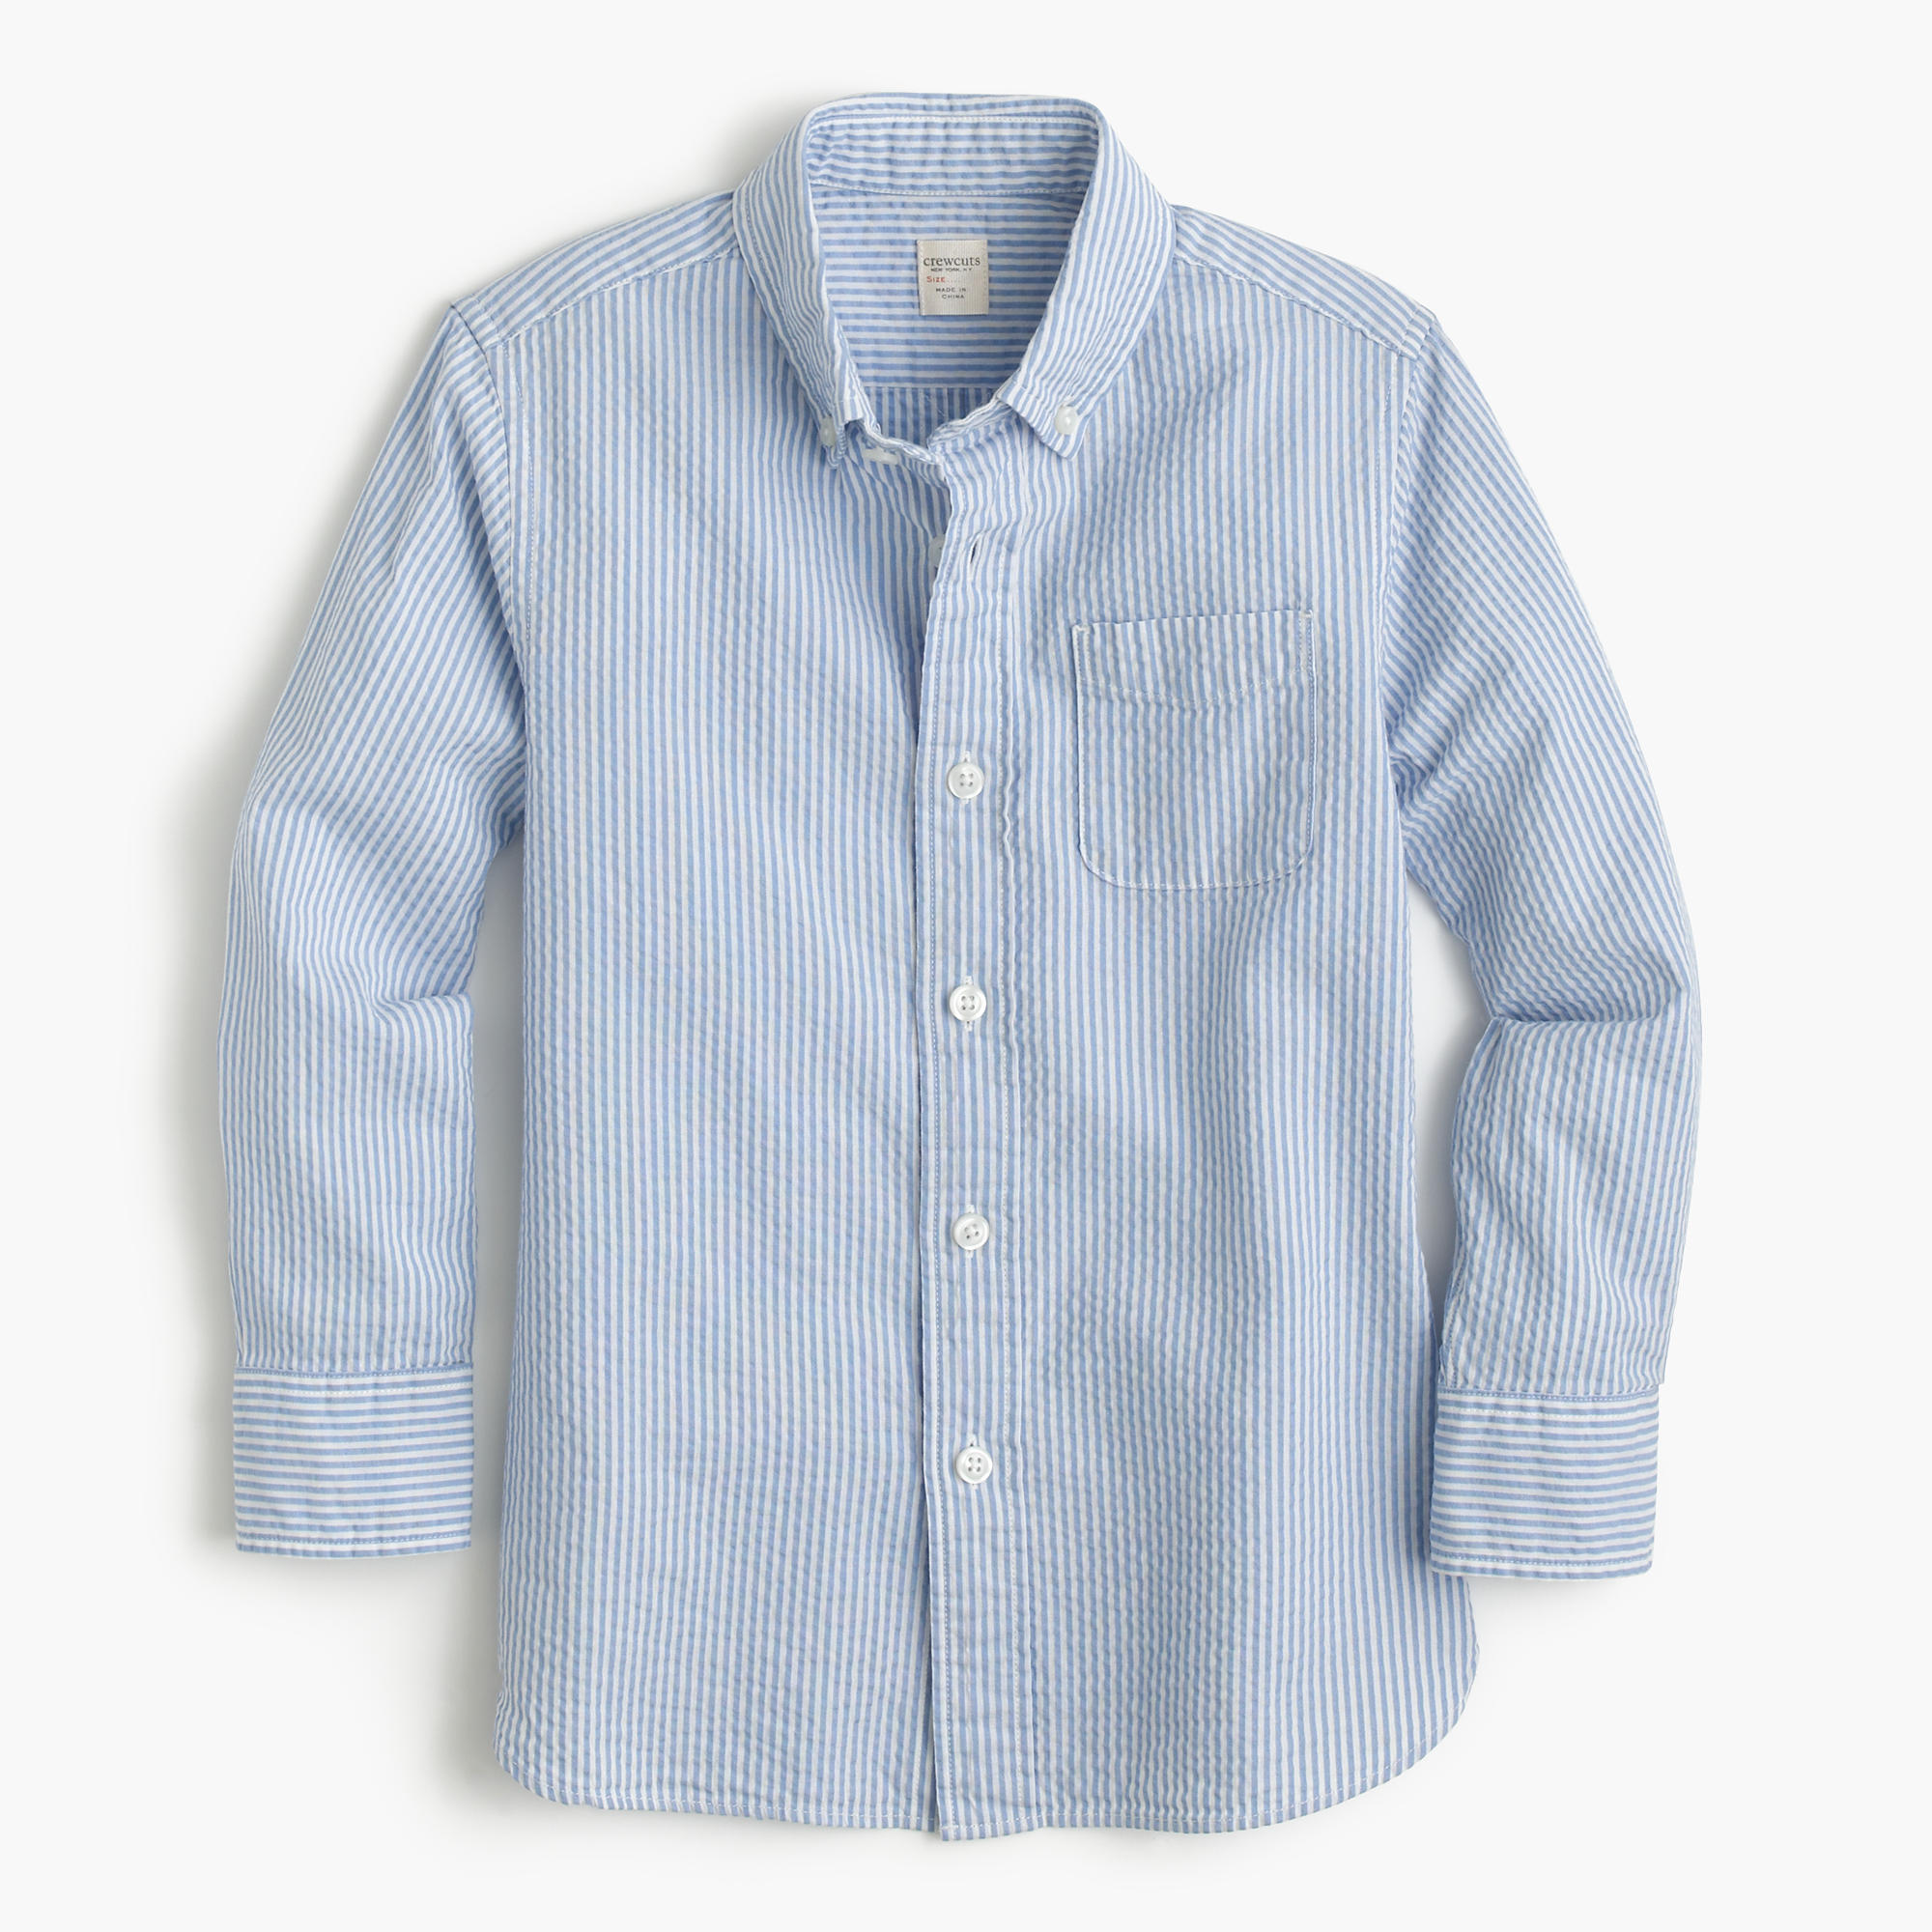 Nothing beats the breezy comfort of our women's seersucker shirt-versatile and perfect for warm-weather days.